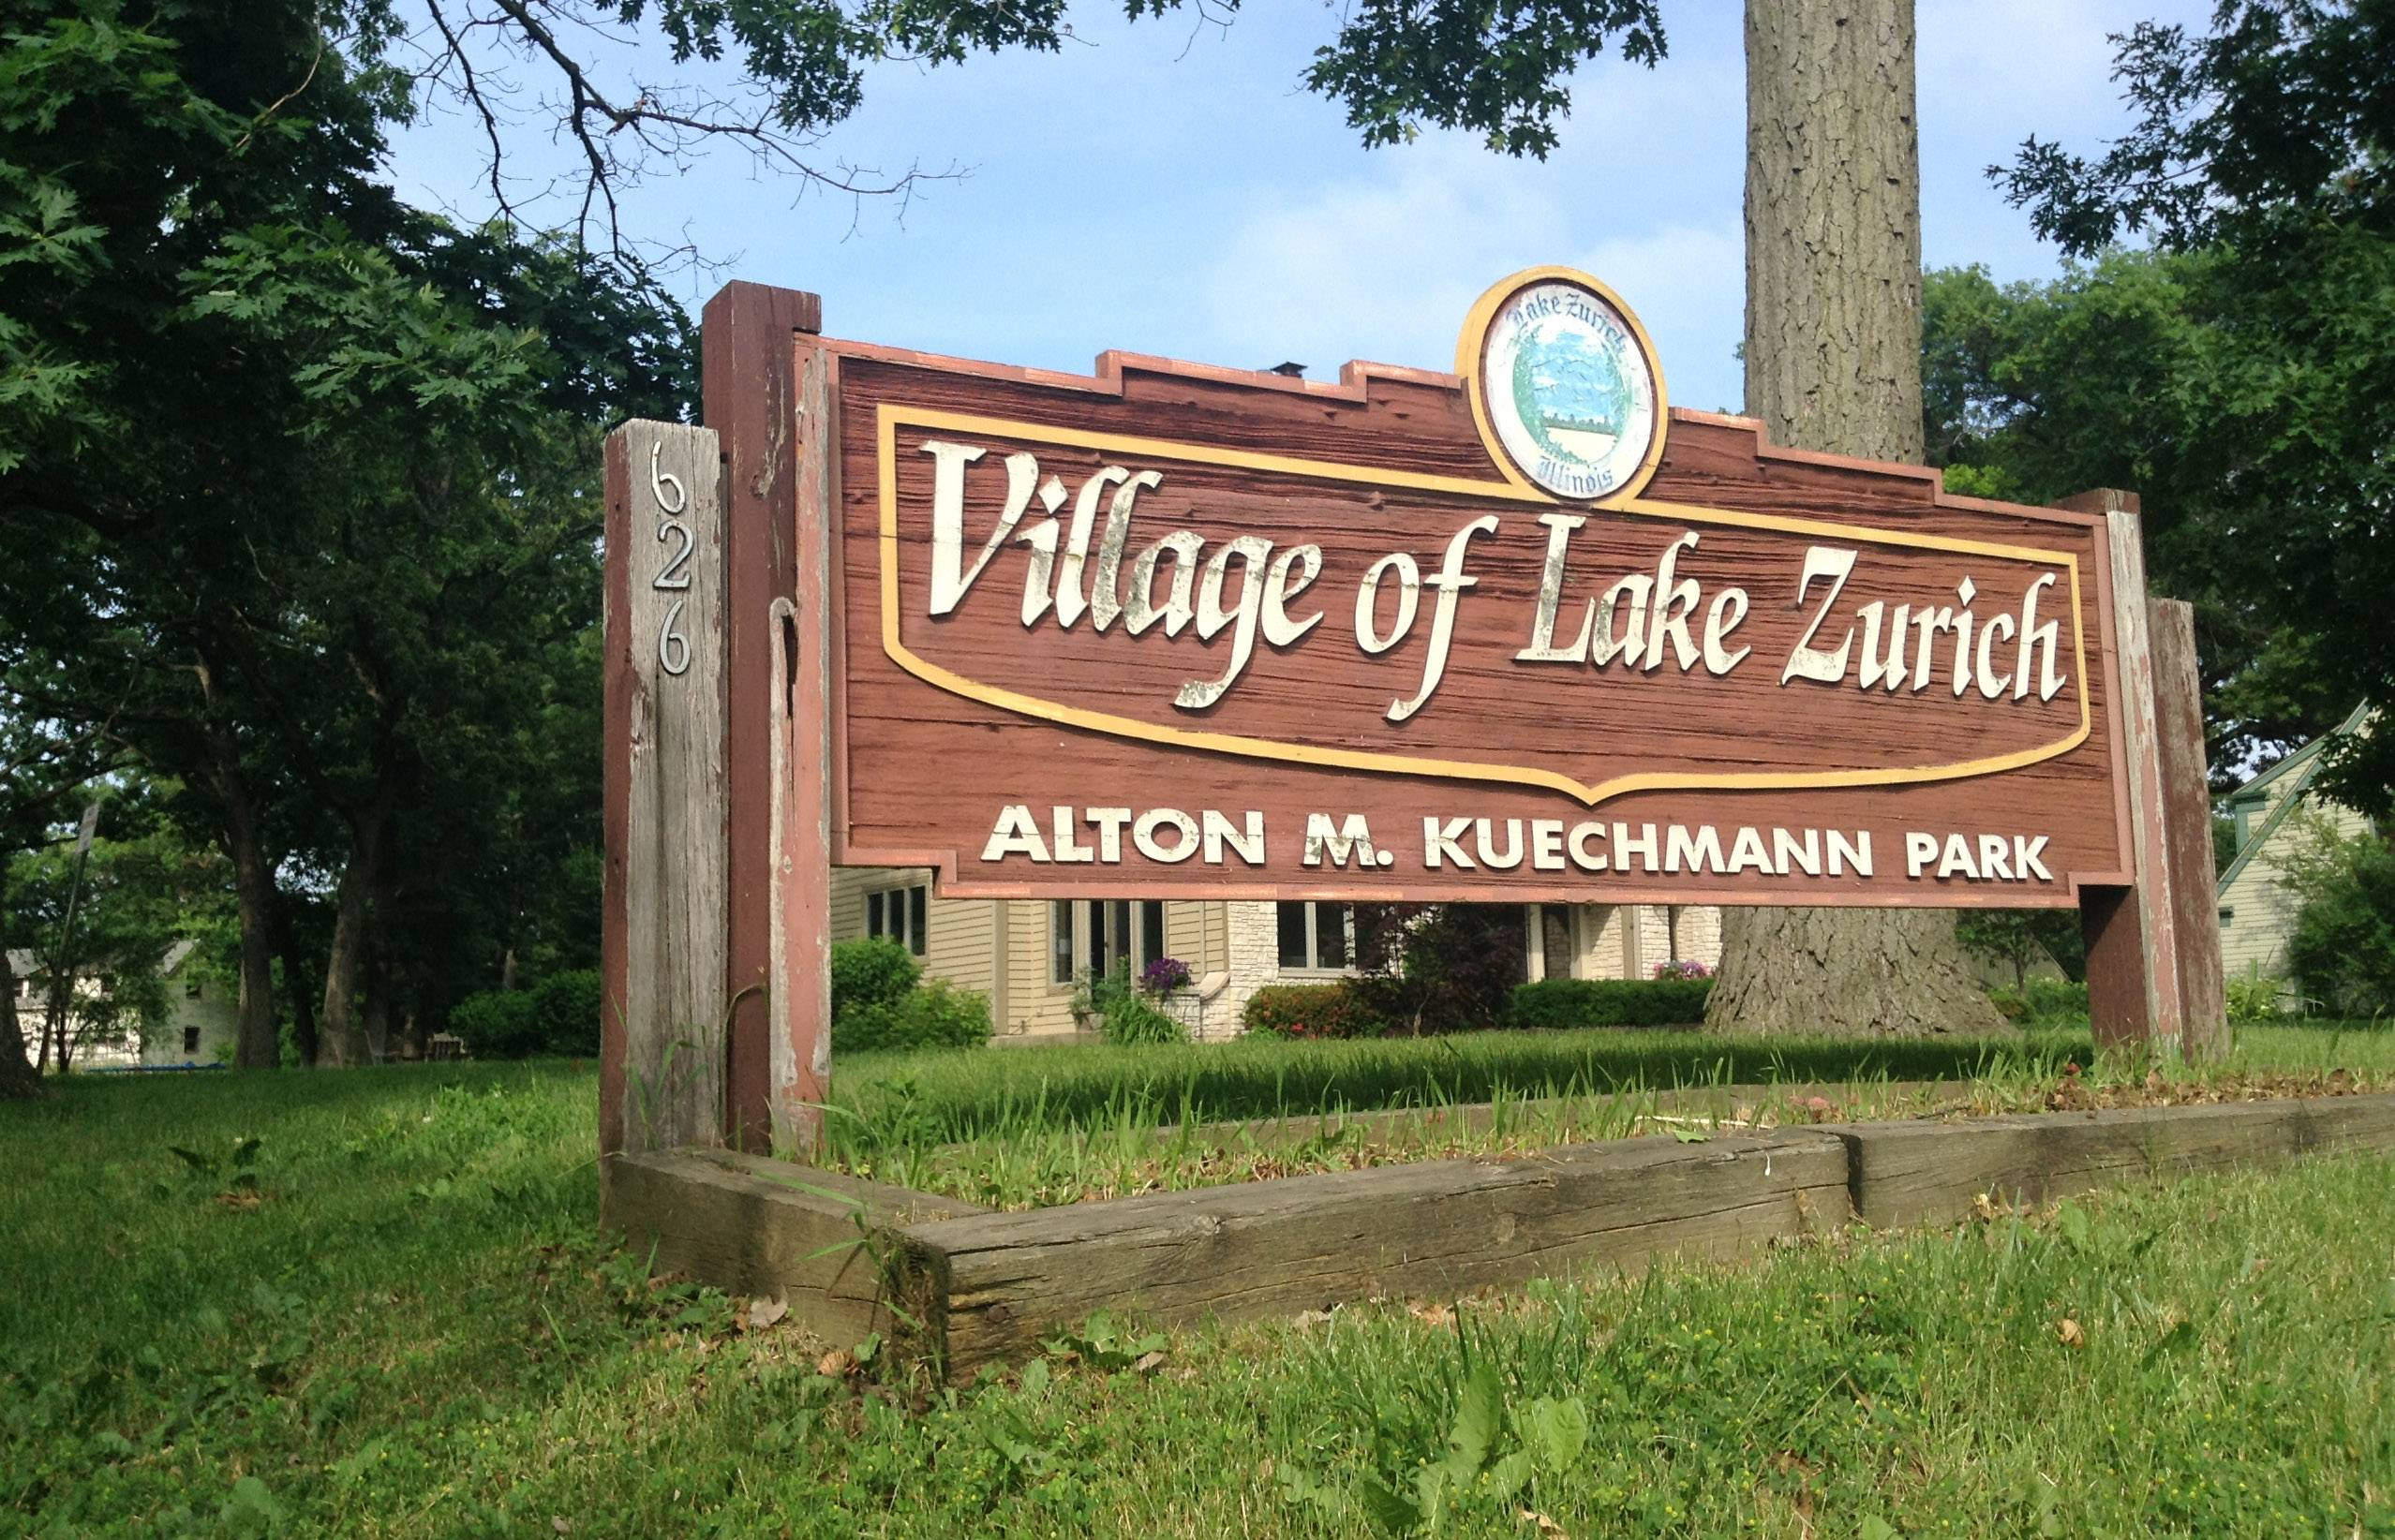 Plan emerges to save Lake Zurich park